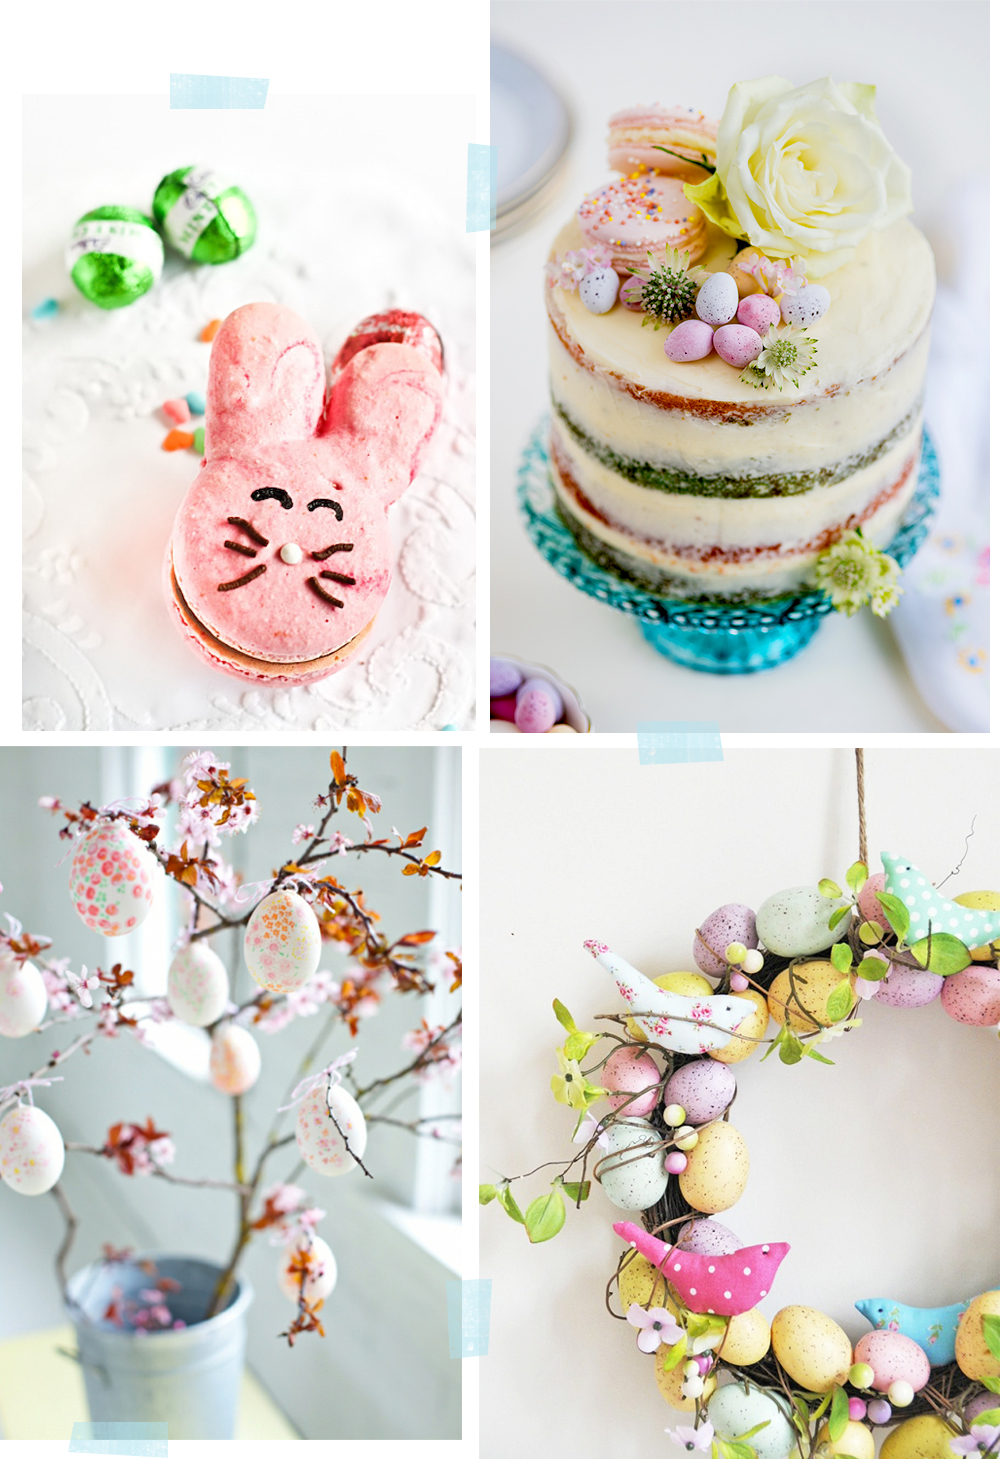 Happy-Easter-emmajayne-designs